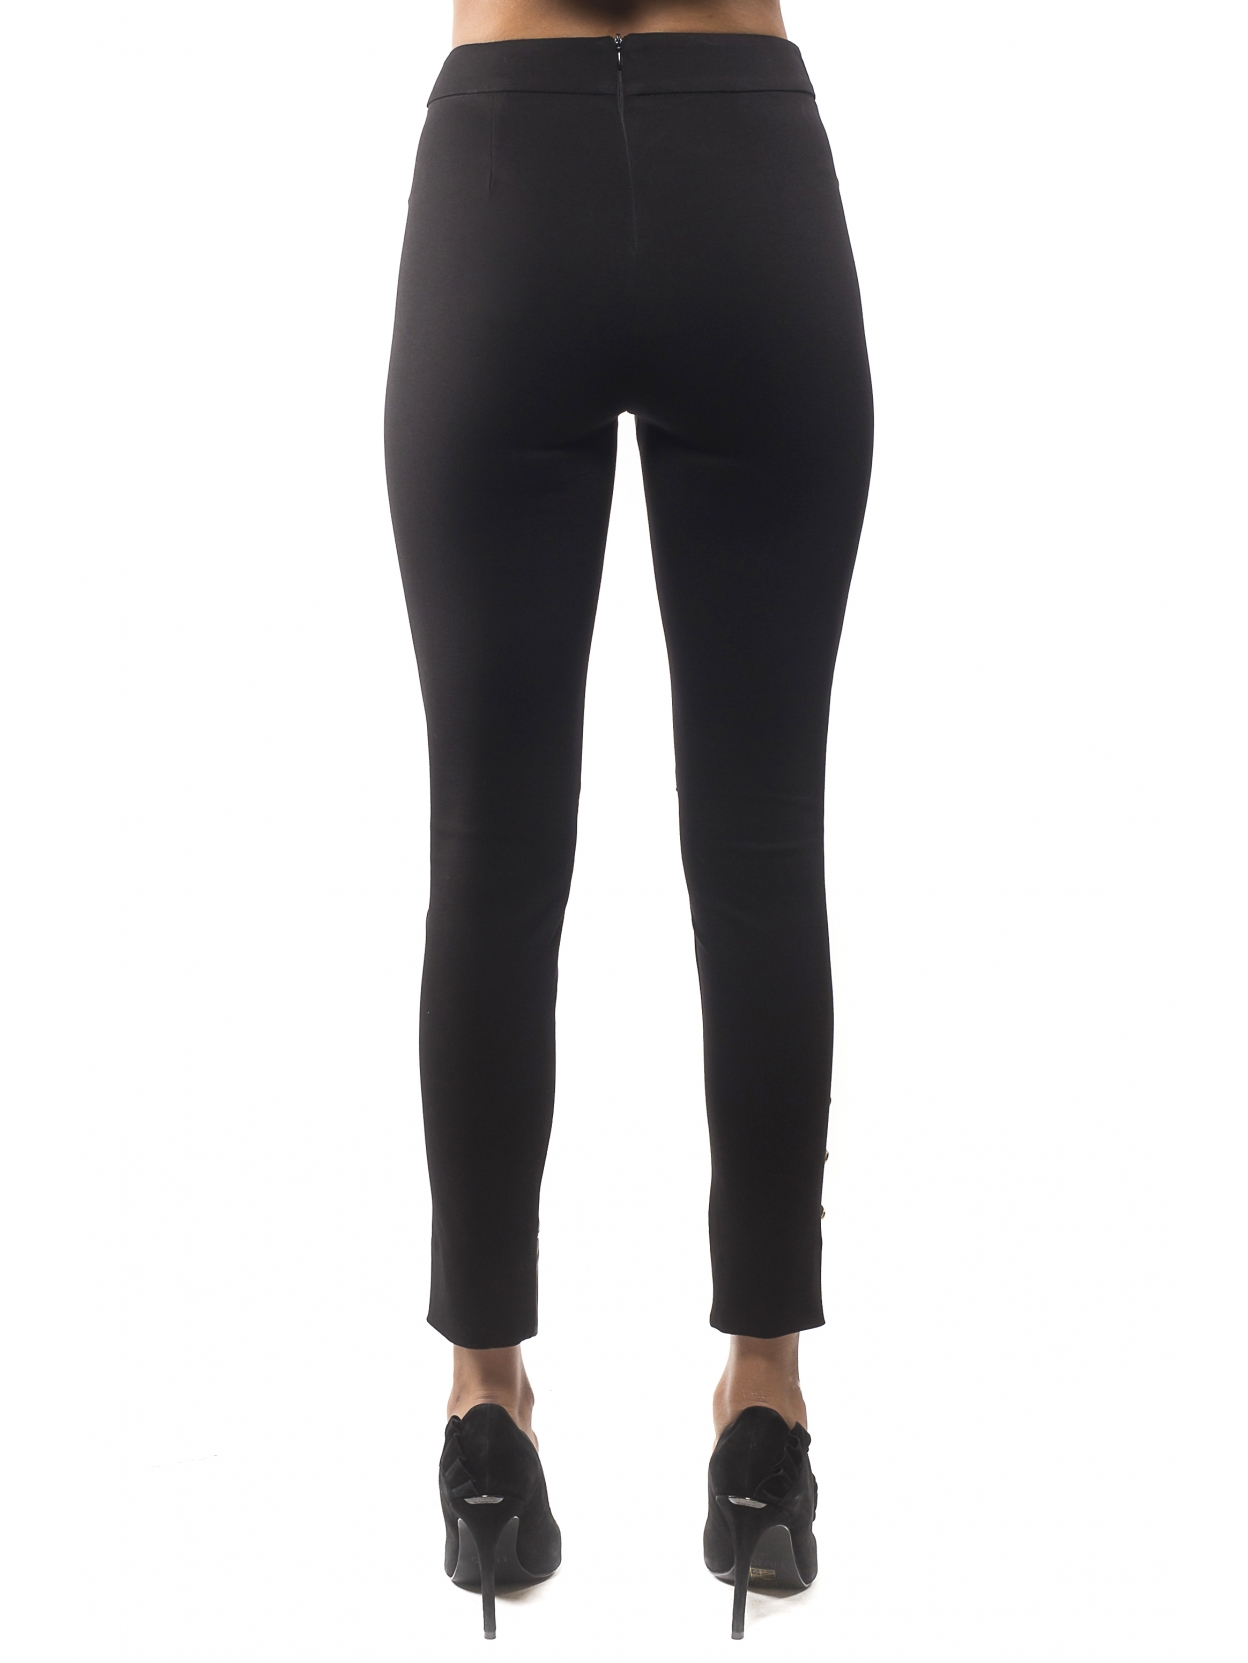 Faux leather leggins  RELISH |  | RDA19075440491199